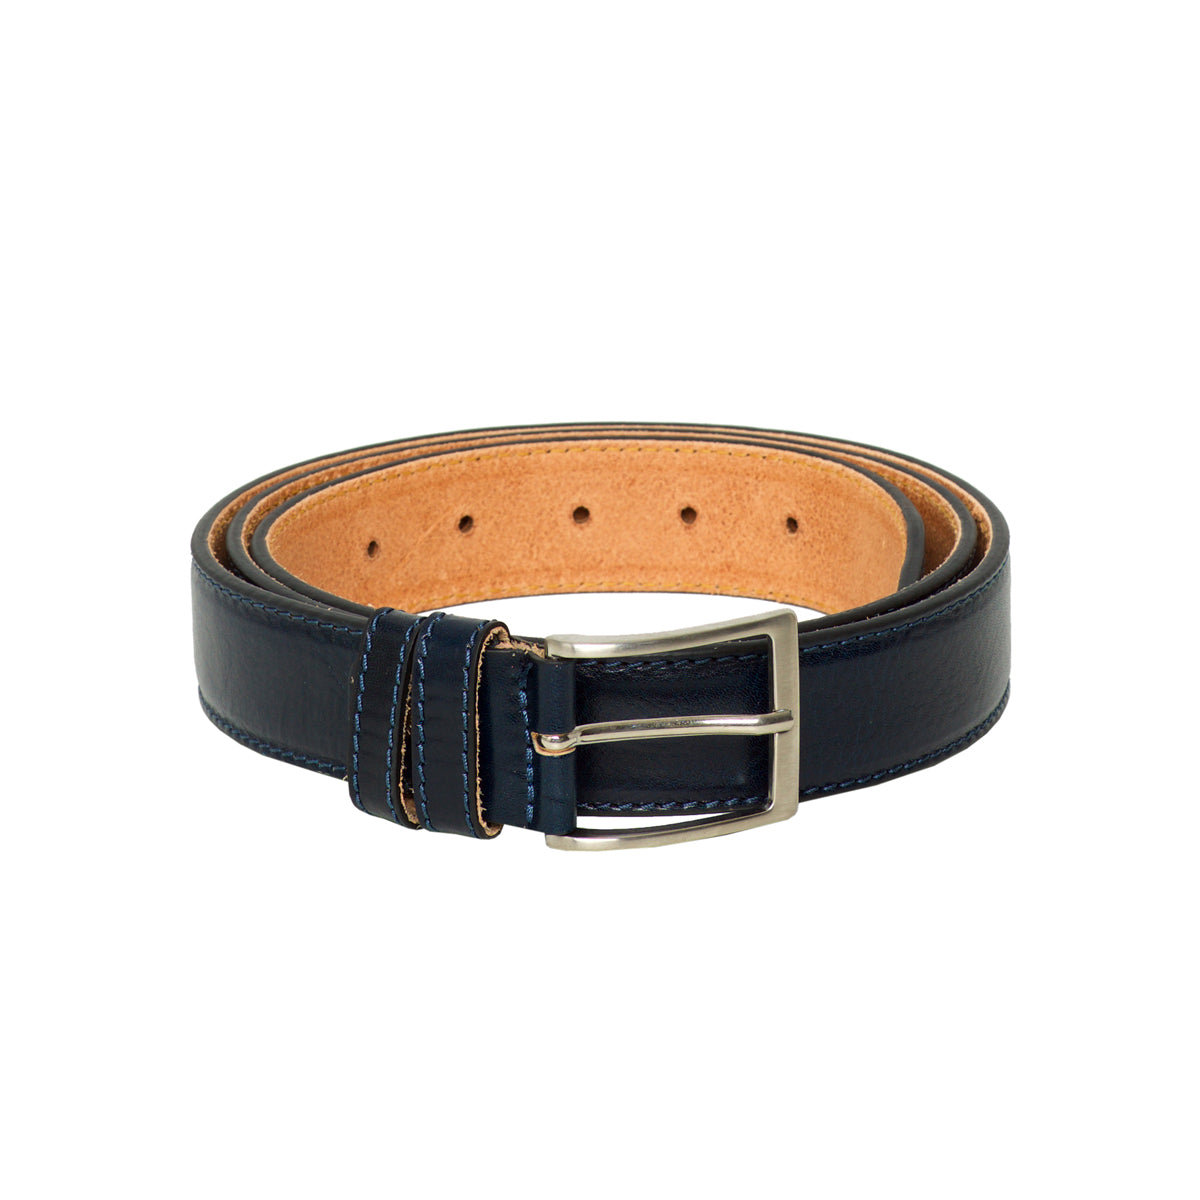 Trieste Blue - Leather Belt